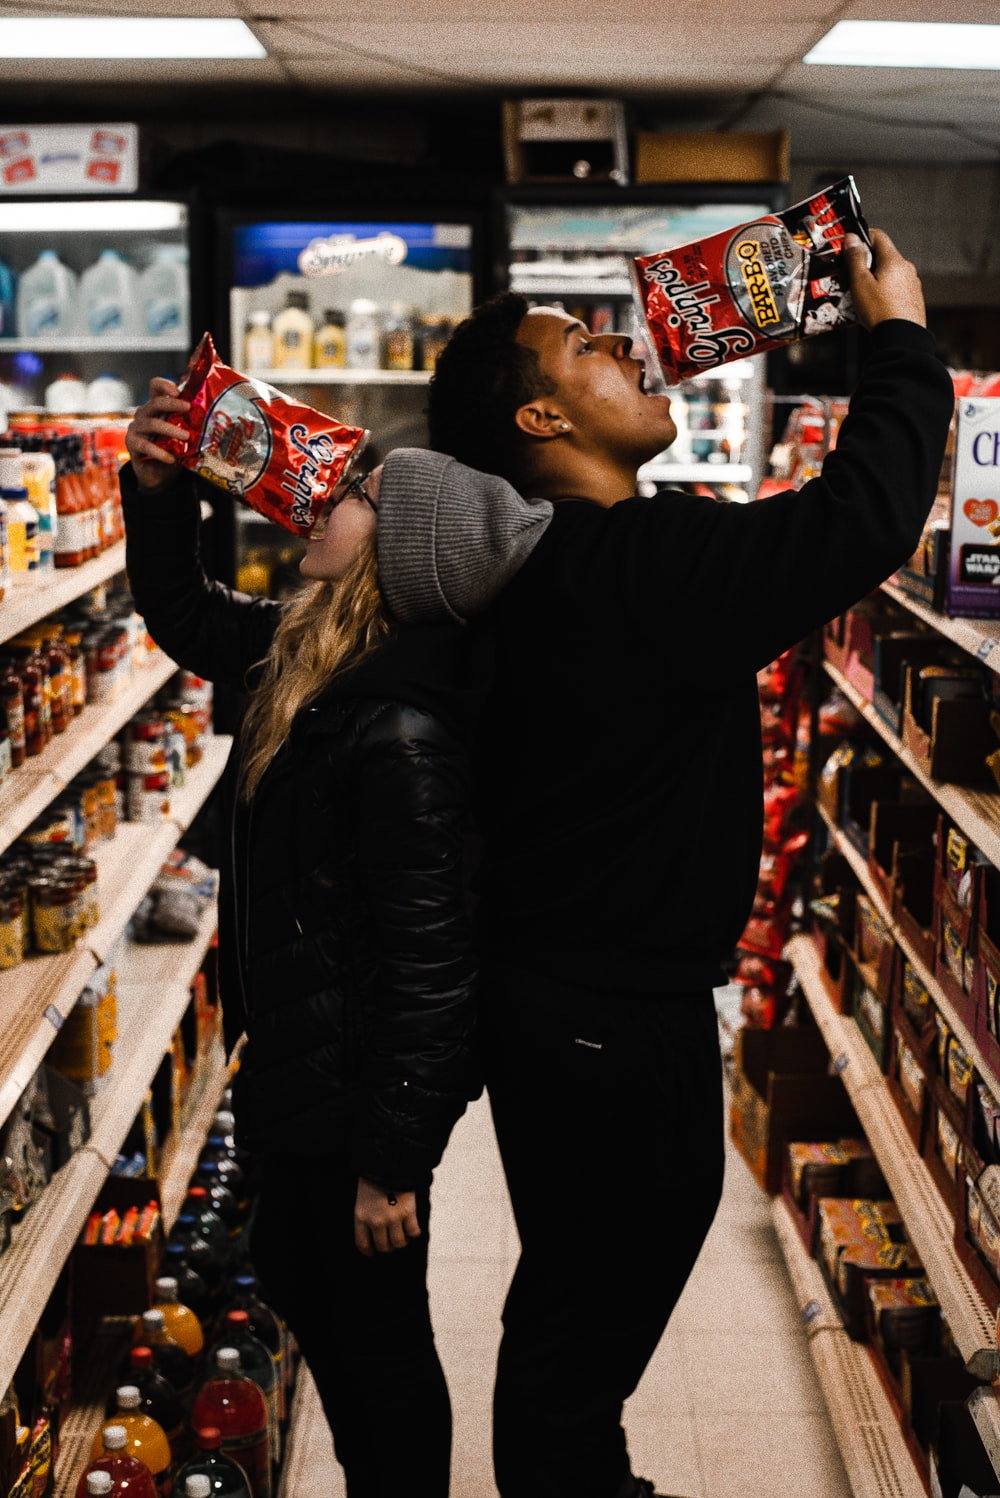 man and woman eating chips in shallow photo